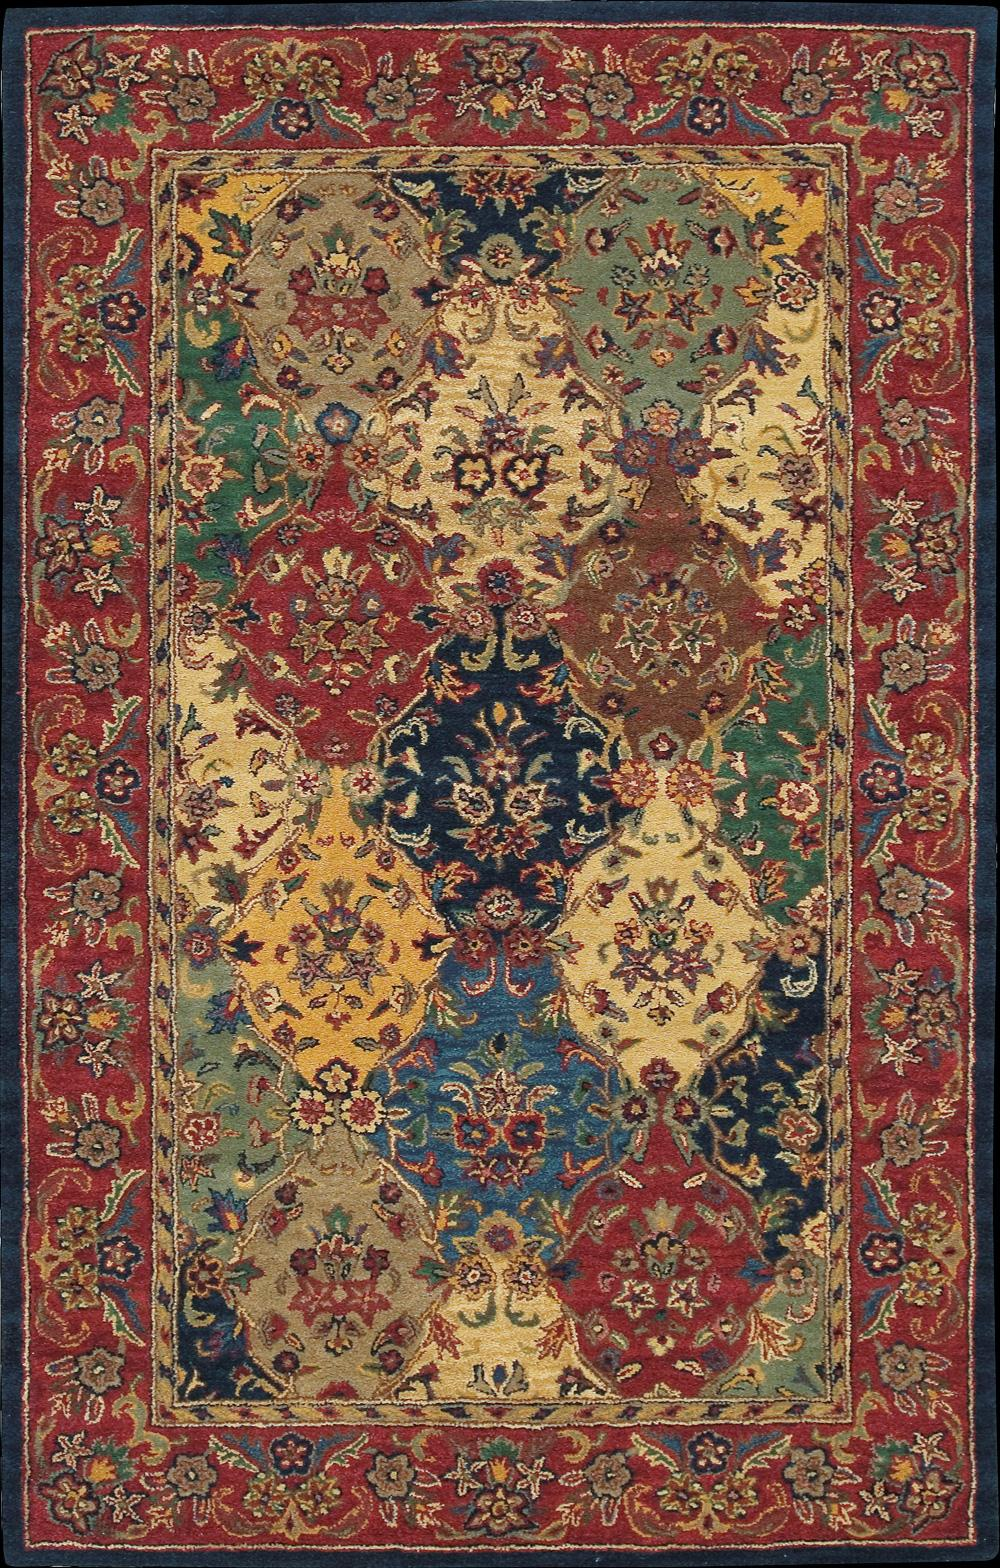 "Nourison India House Area Rug 3'6"" x 5'6"" - Item Number: 12472"